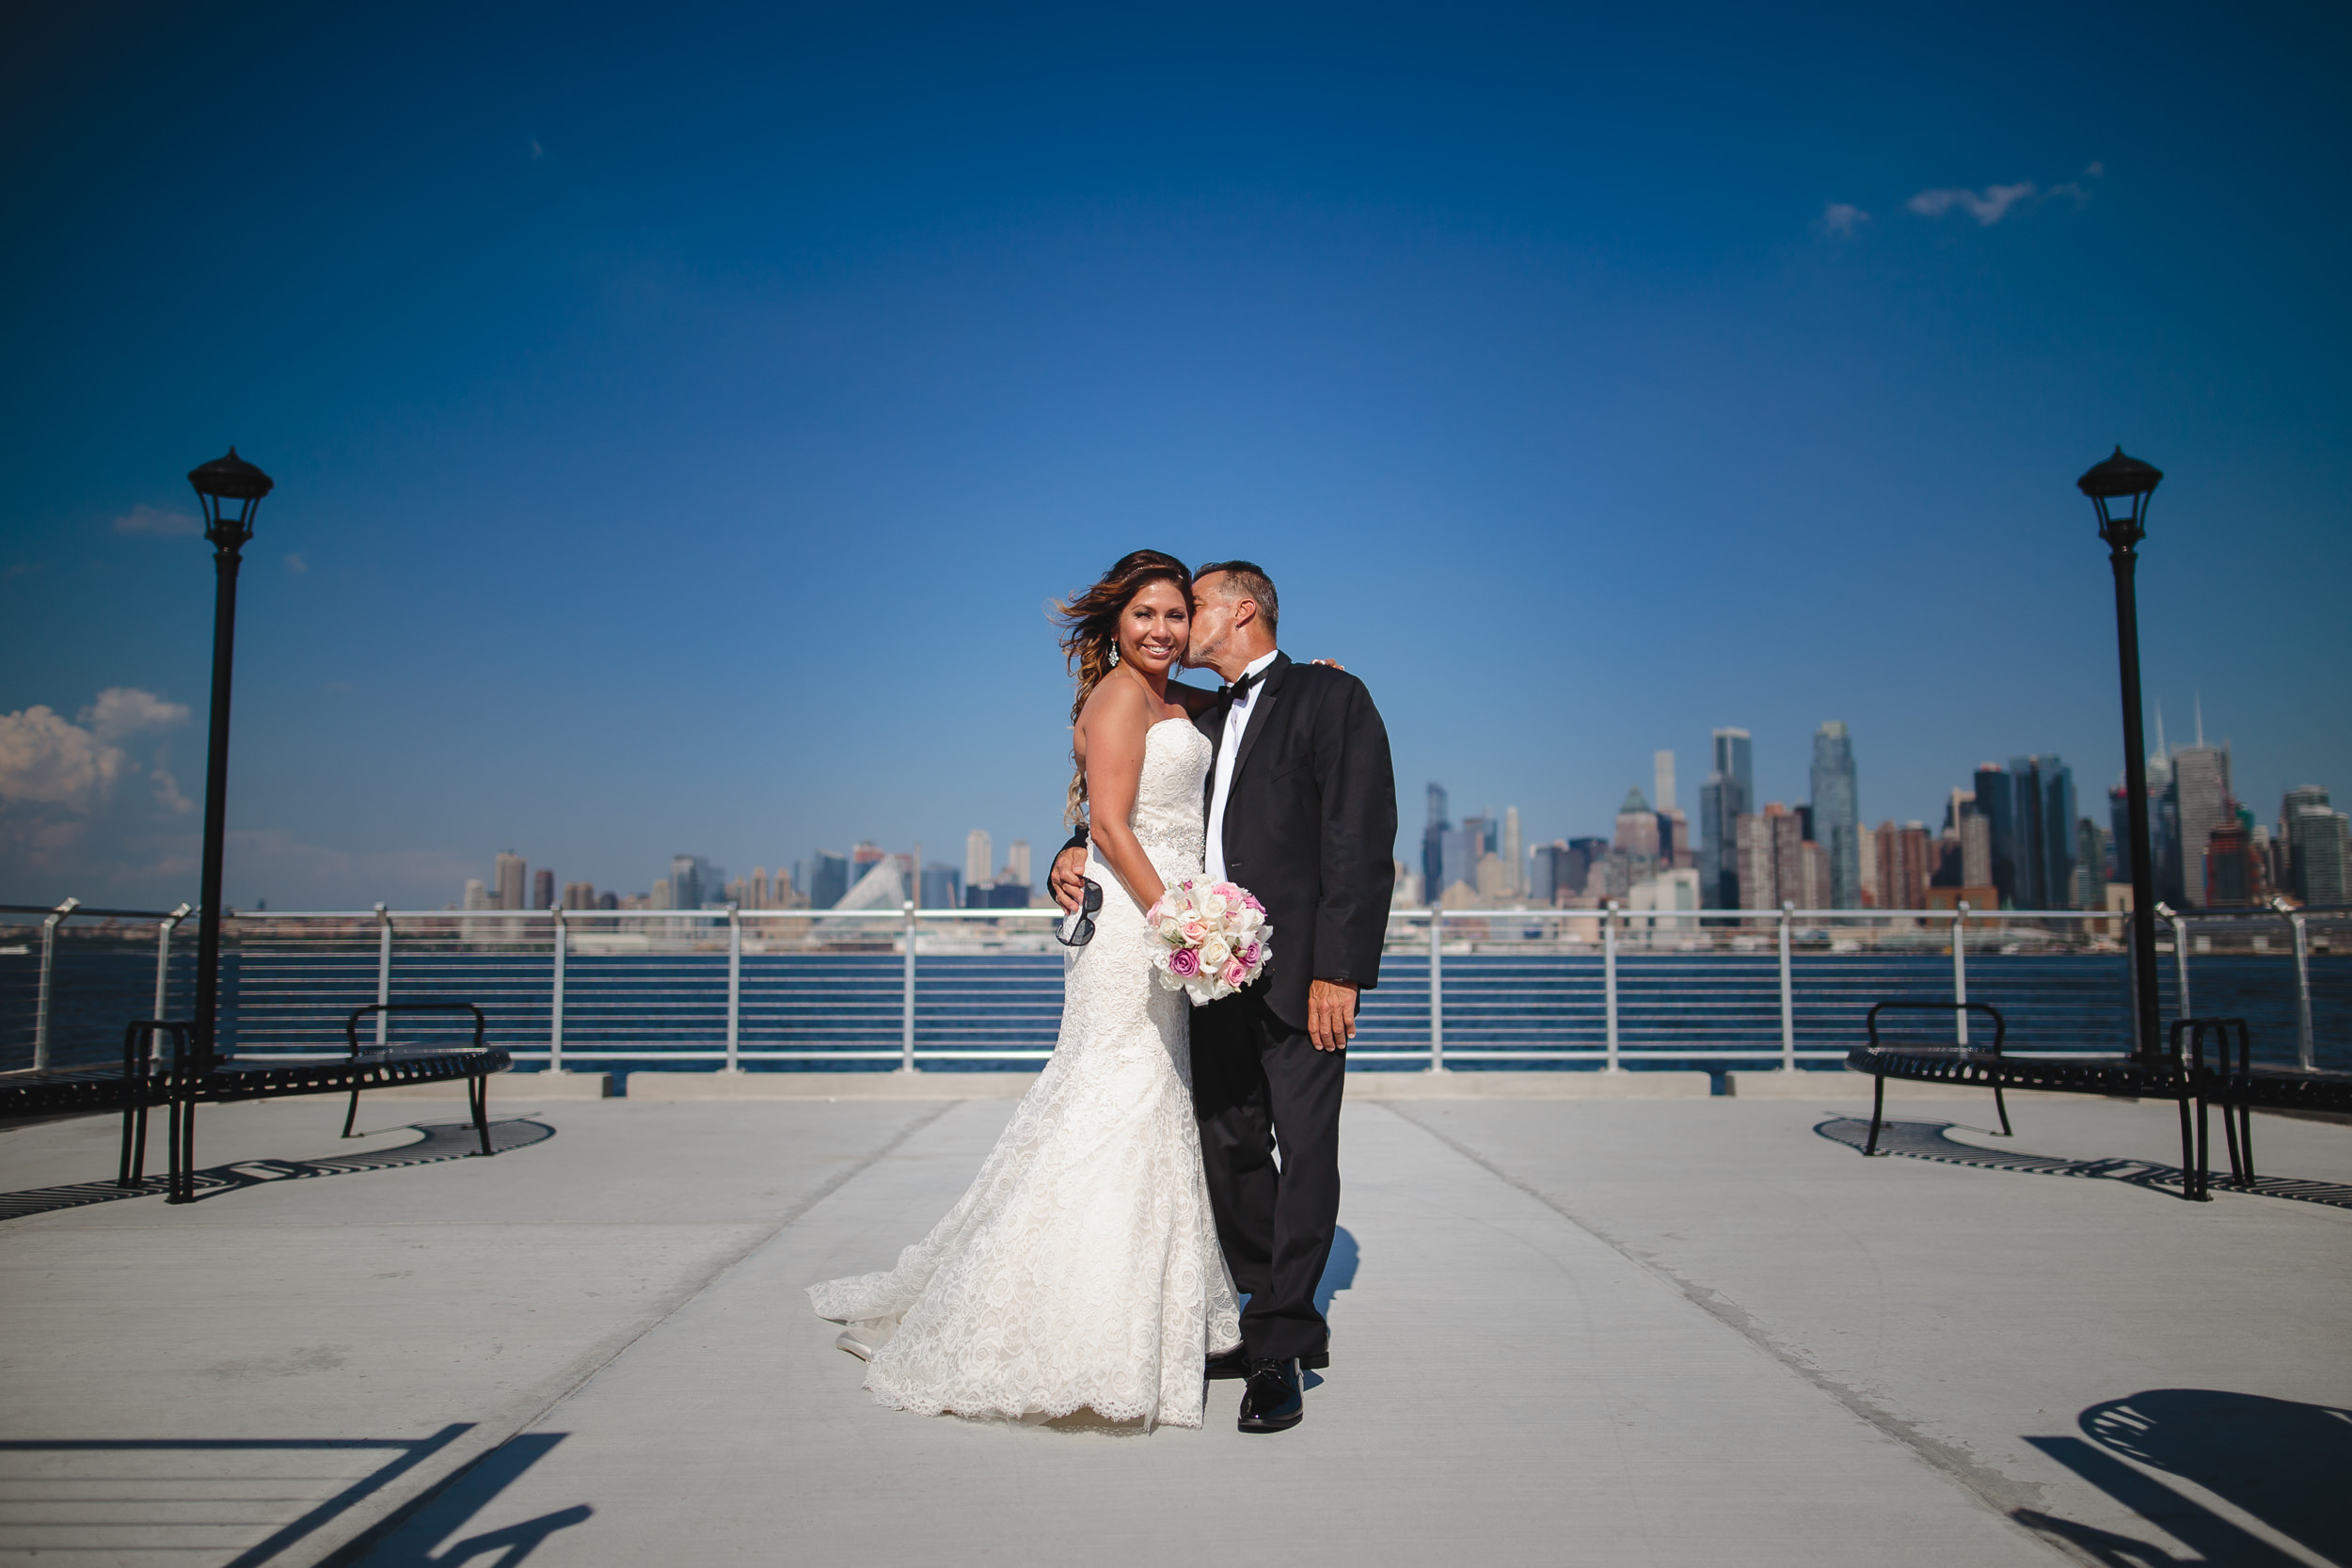 wedding portrait bride groom wehawken waterfront pier nj